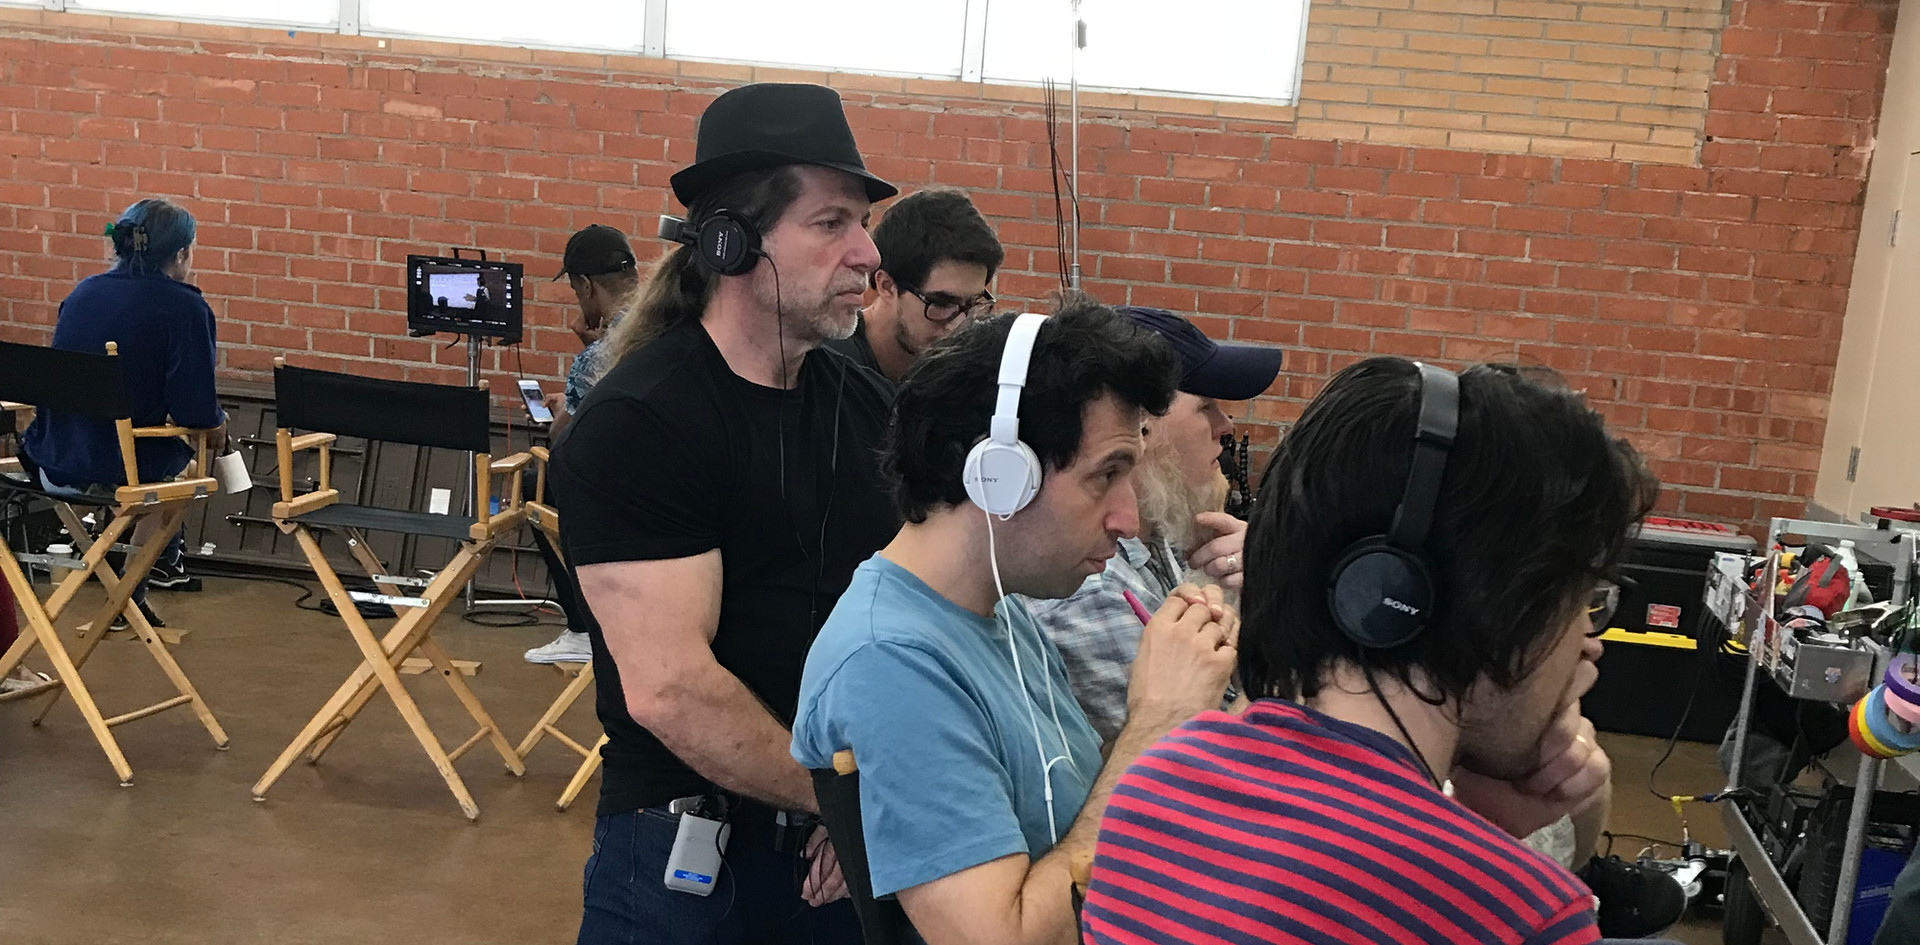 OH JEROME, NO - Producer Ed Polgardy watches a take with Writer-Directors Alex Karpovsky and Teddy Blanks.